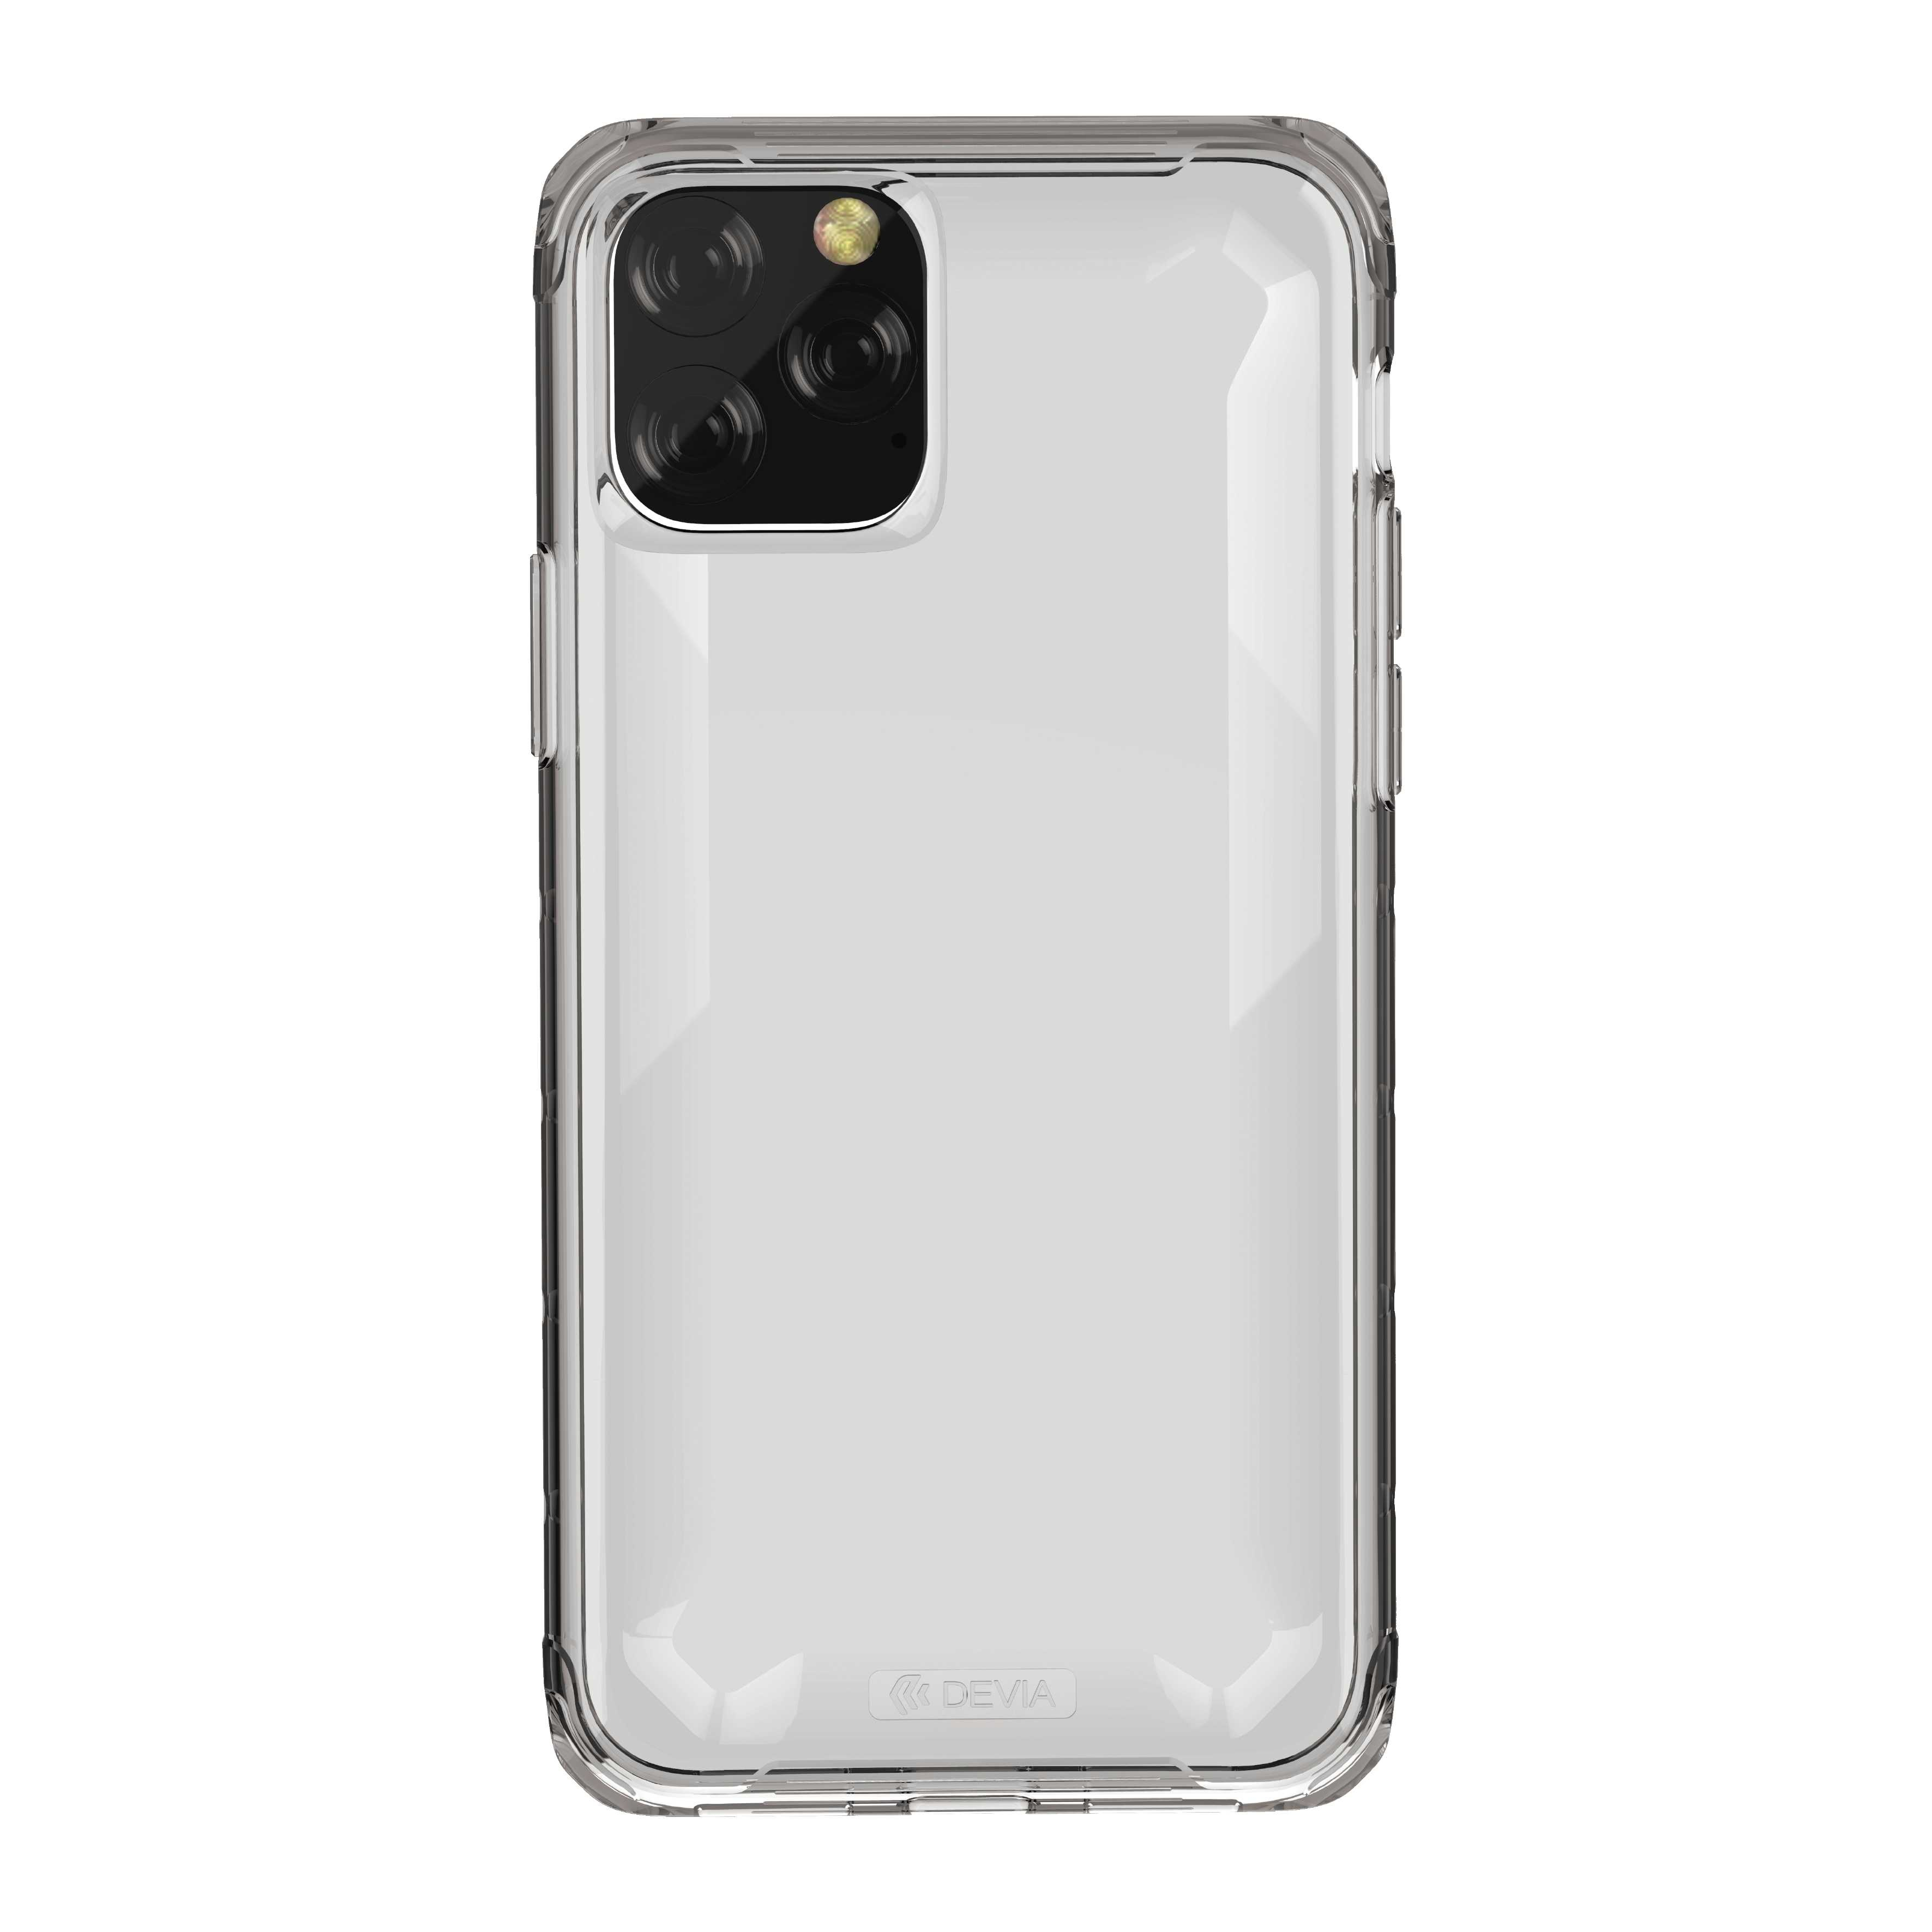 Devia Defender2 Series Case for Apple iPhone 11 Pro - Crystal Clear